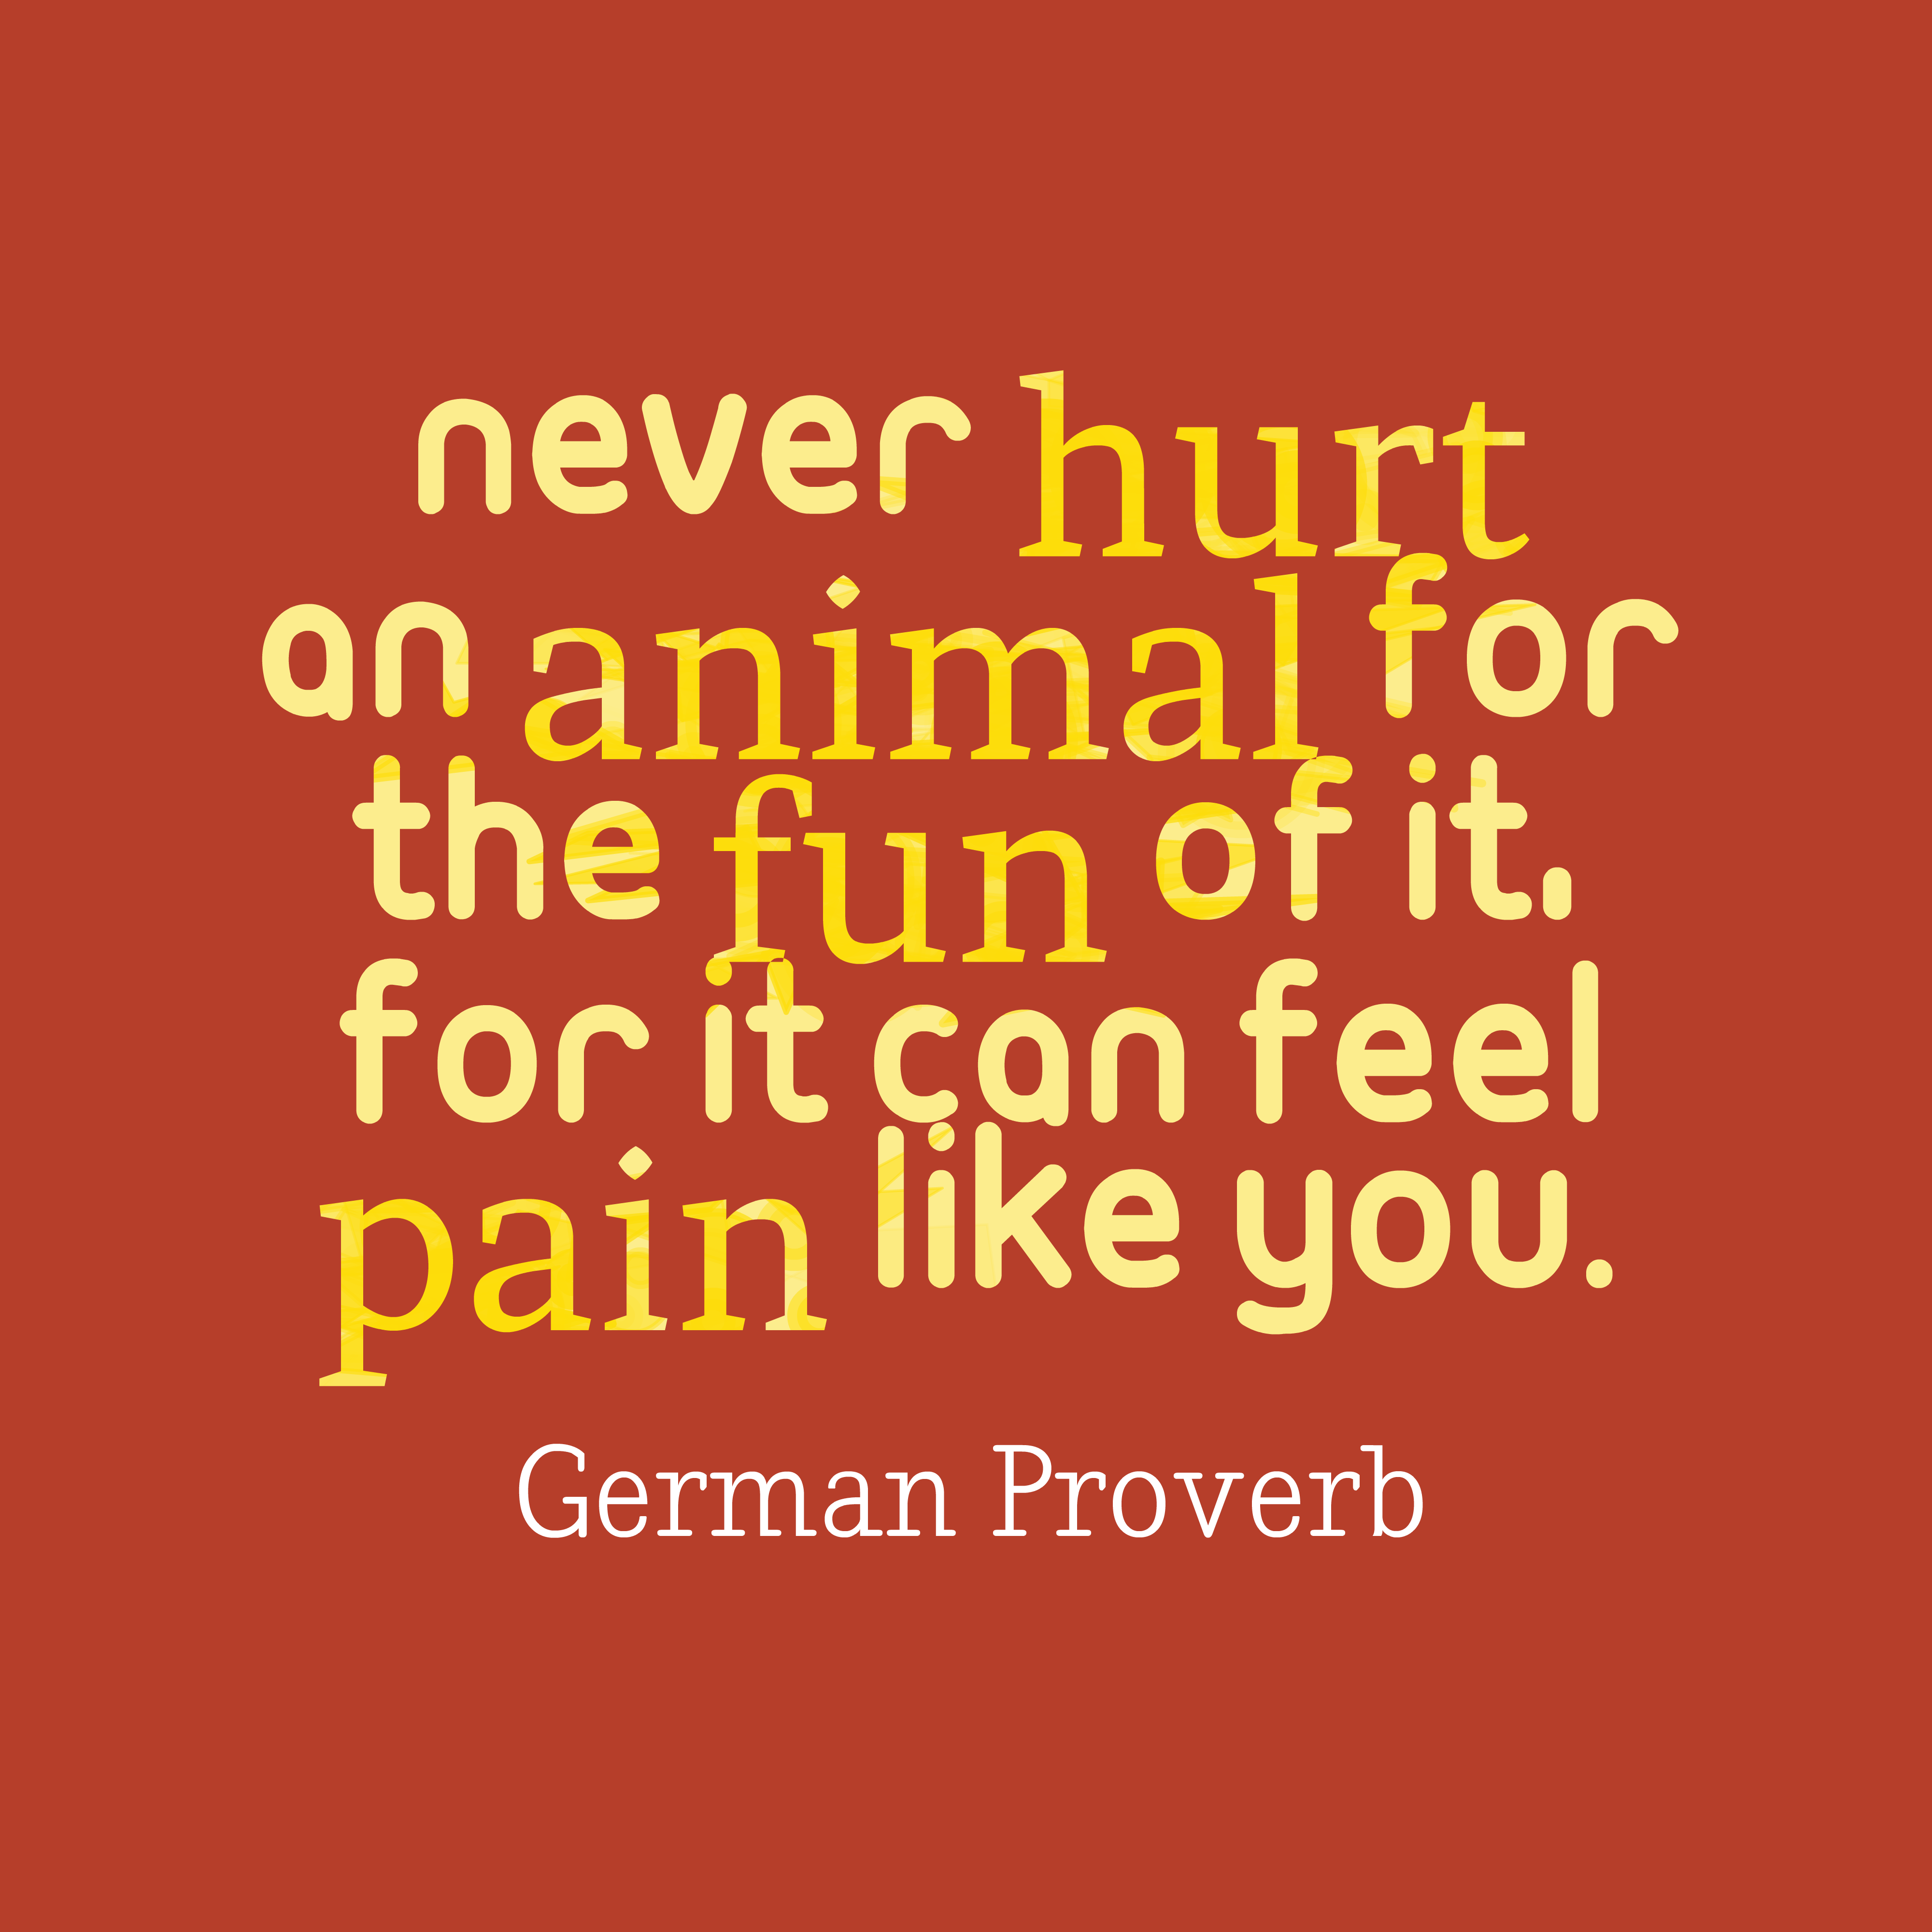 Quotes image of Never hurt an animal for the fun of it, for it can feel pain like you.